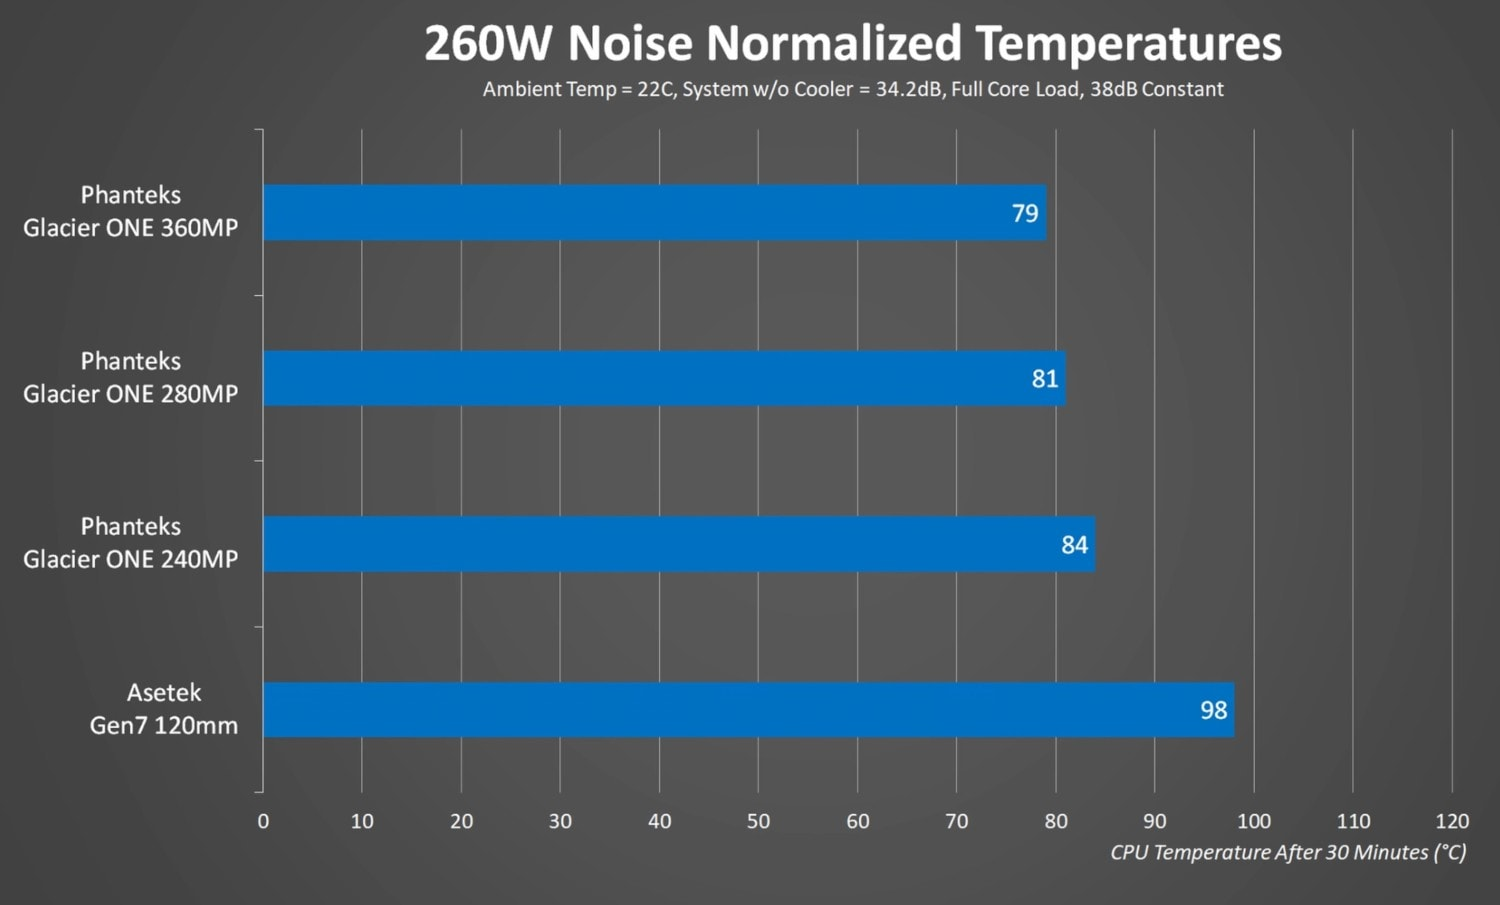 360 mm radiator noise-normalized temperatures